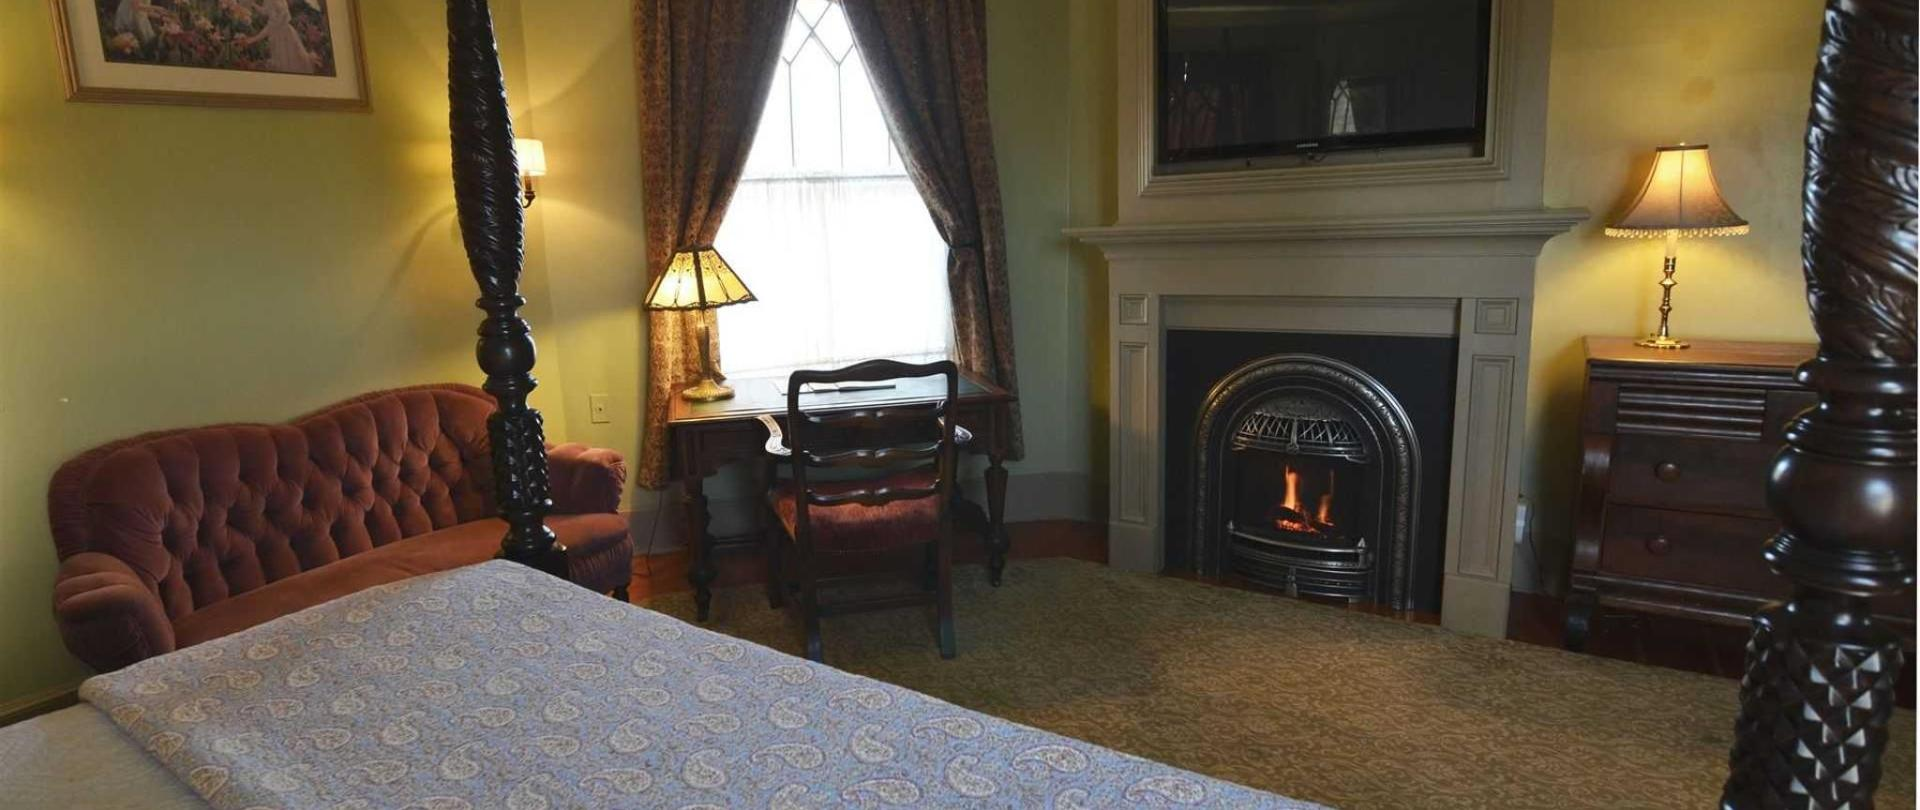 Union Gables Mansion Inn Located In The Heart Of Saratoga